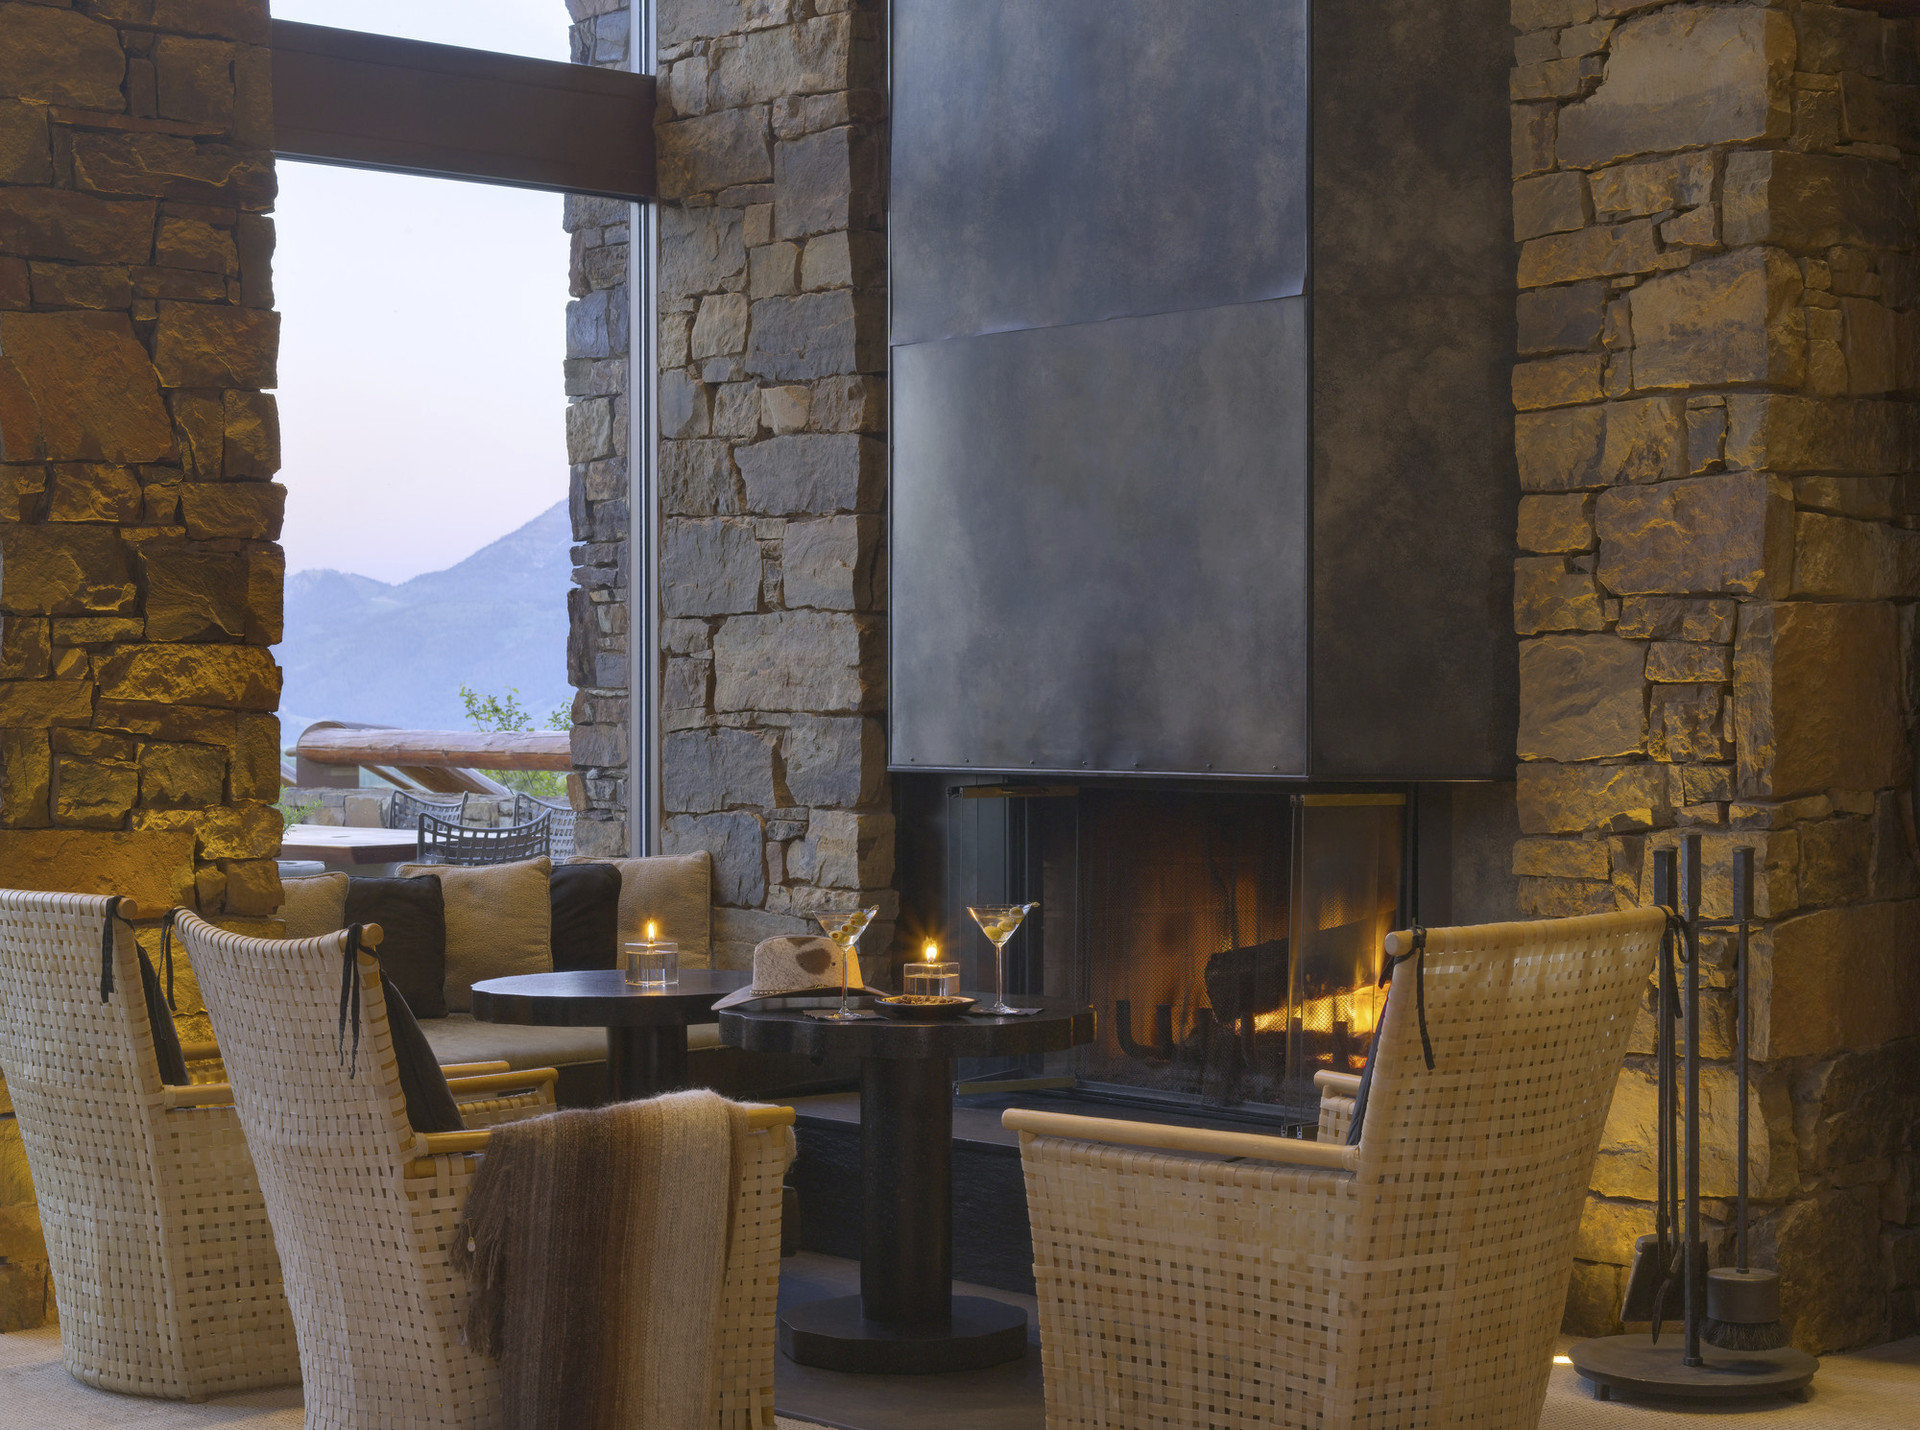 Hotels Luxury Travel Mountains + Skiing hearth Fireplace room building wall wood interior design home living room cottage stone area